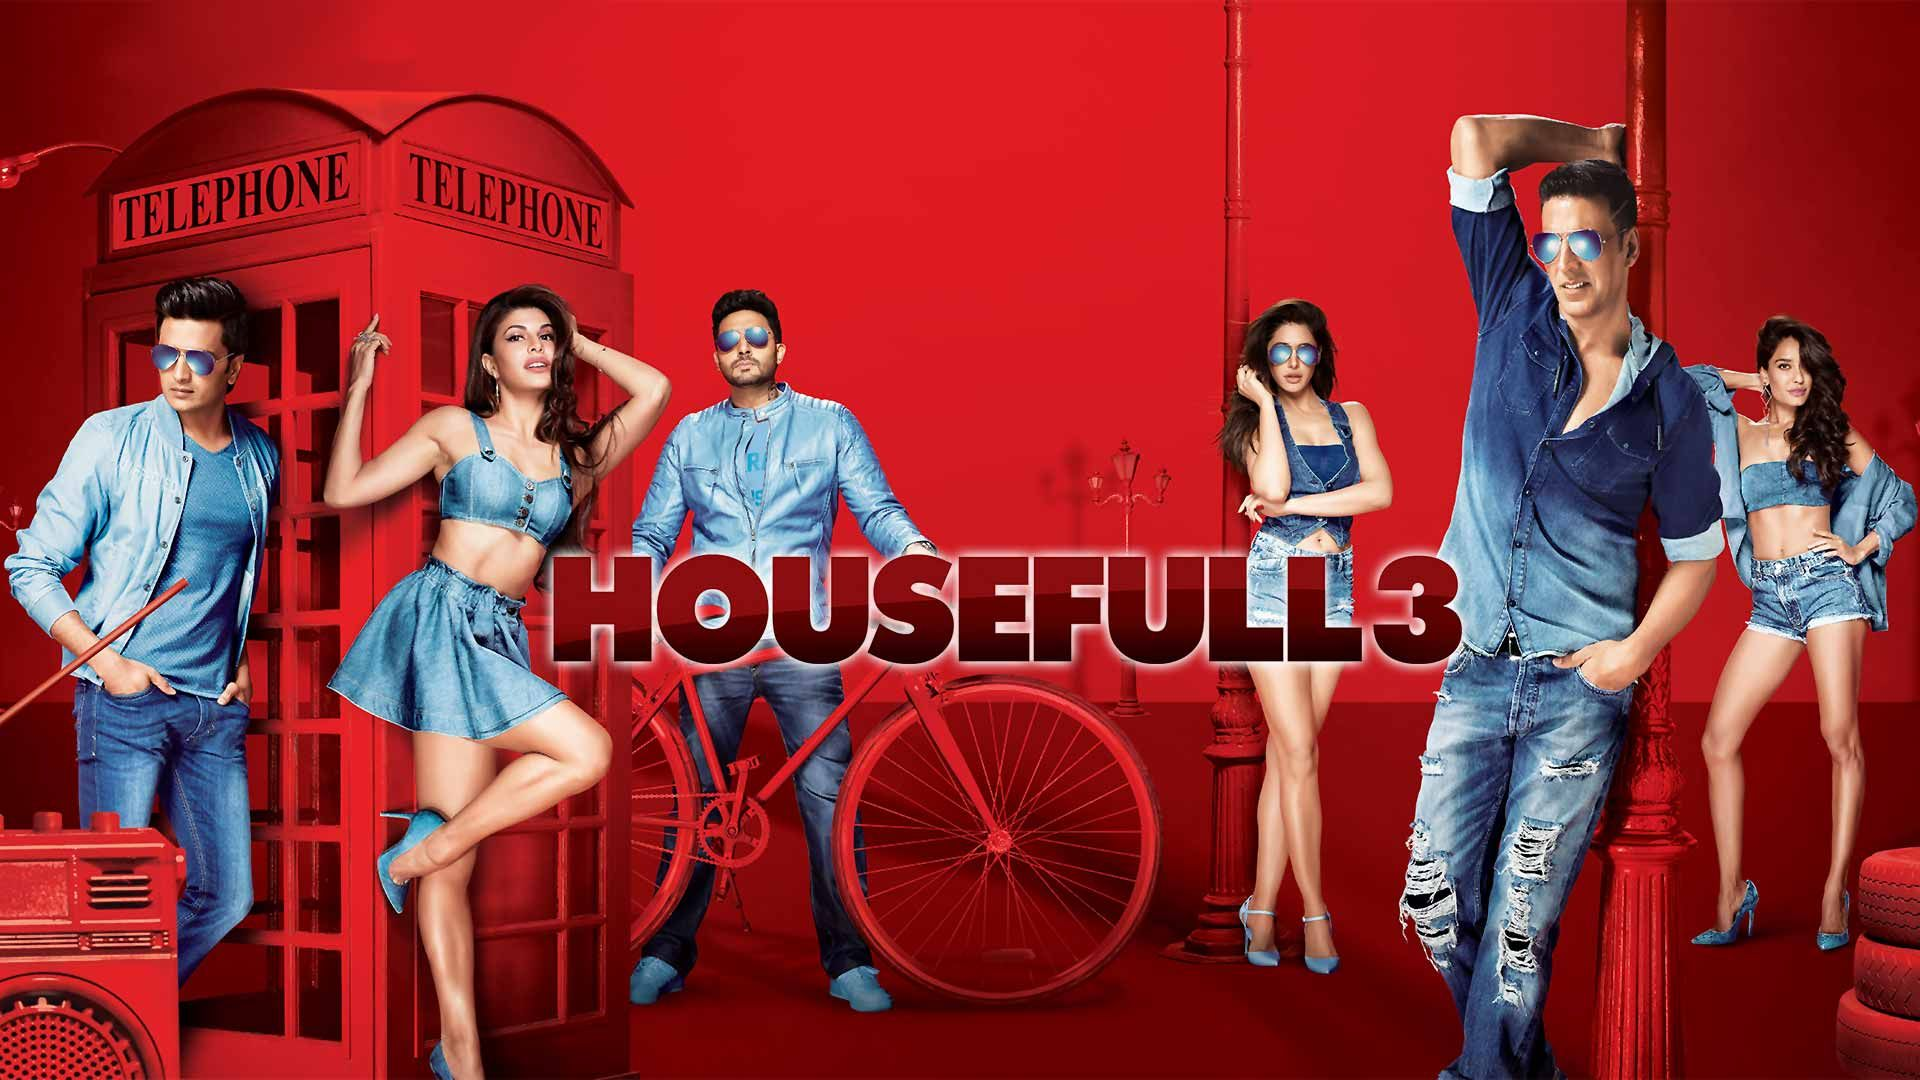 Photo of Housefull 3 Full Movie Download In DVDRip and BluRay Motion For Free